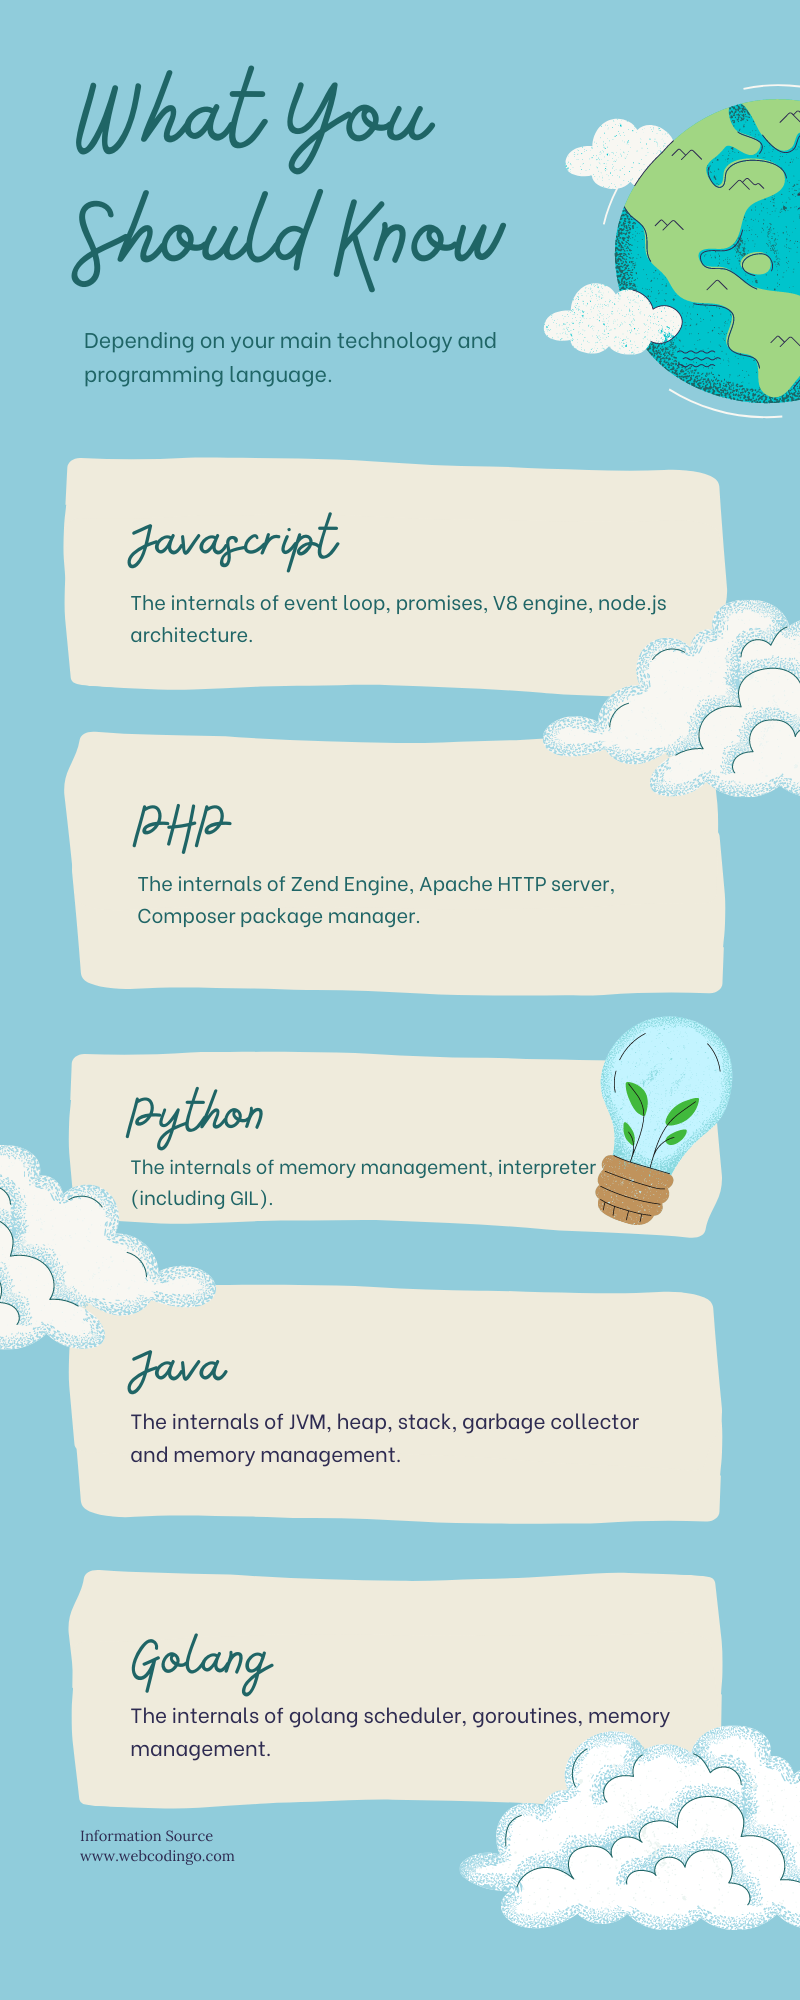 skills needed to become a better programmer